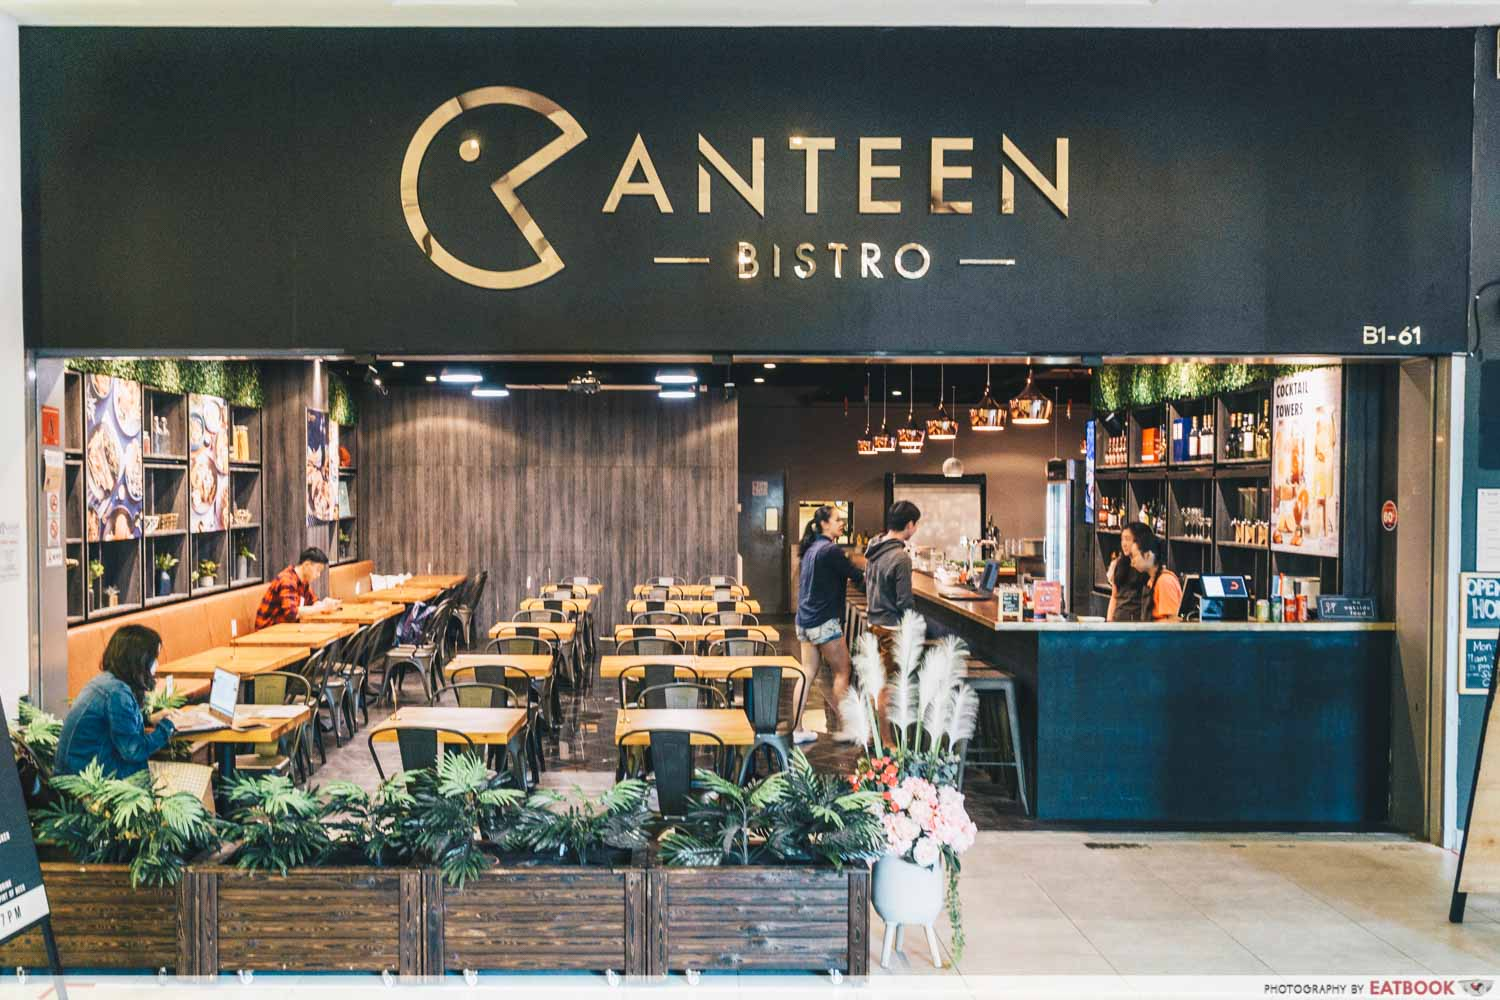 Canteen Bistro - Storefront